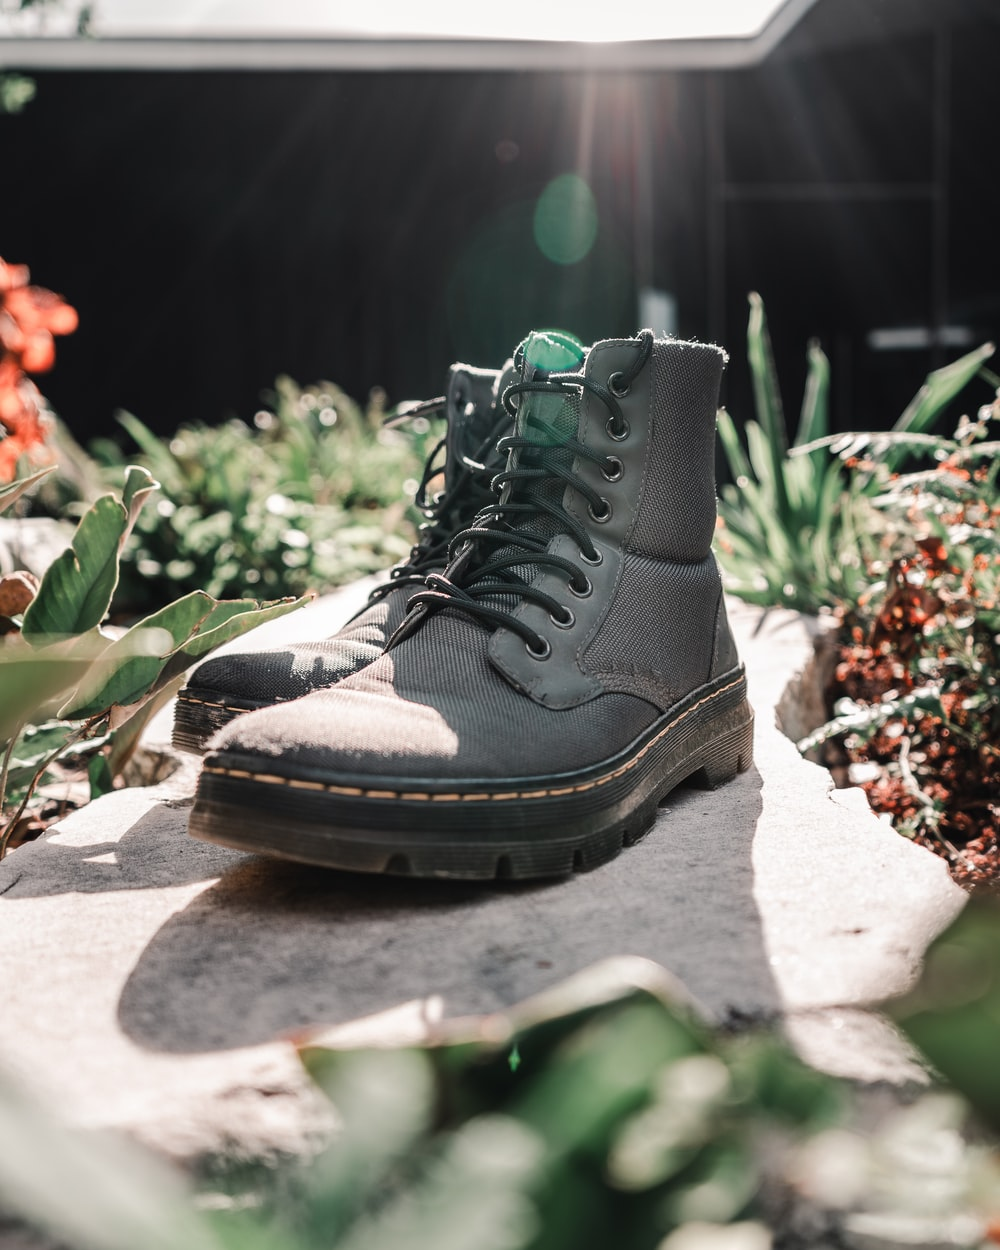 black and brown hiking boot on white textile